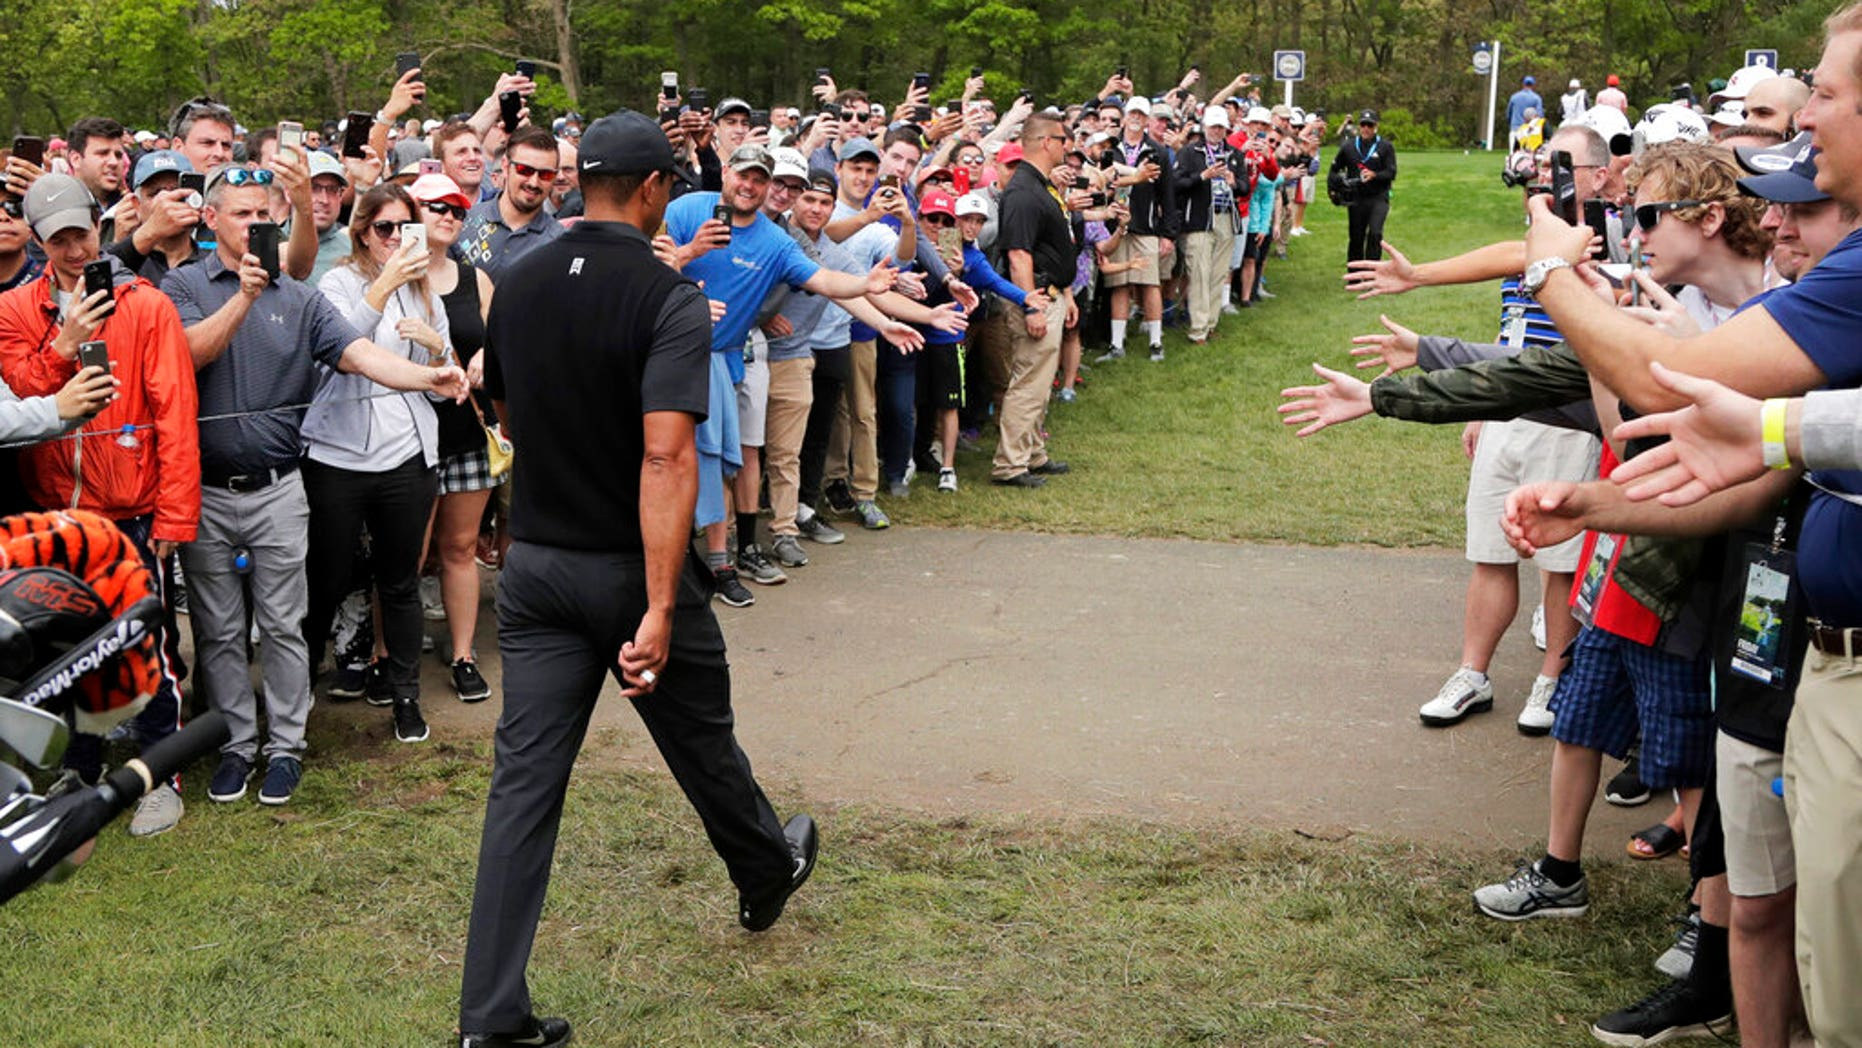 Tiger Woods during the second round of the PGA Championship Golf Tournament, 2019 On Friday, May 17, he goes to the 8th Bethpage Black tournament Farmingdale, NY (AP Photo / Julio Cortez)